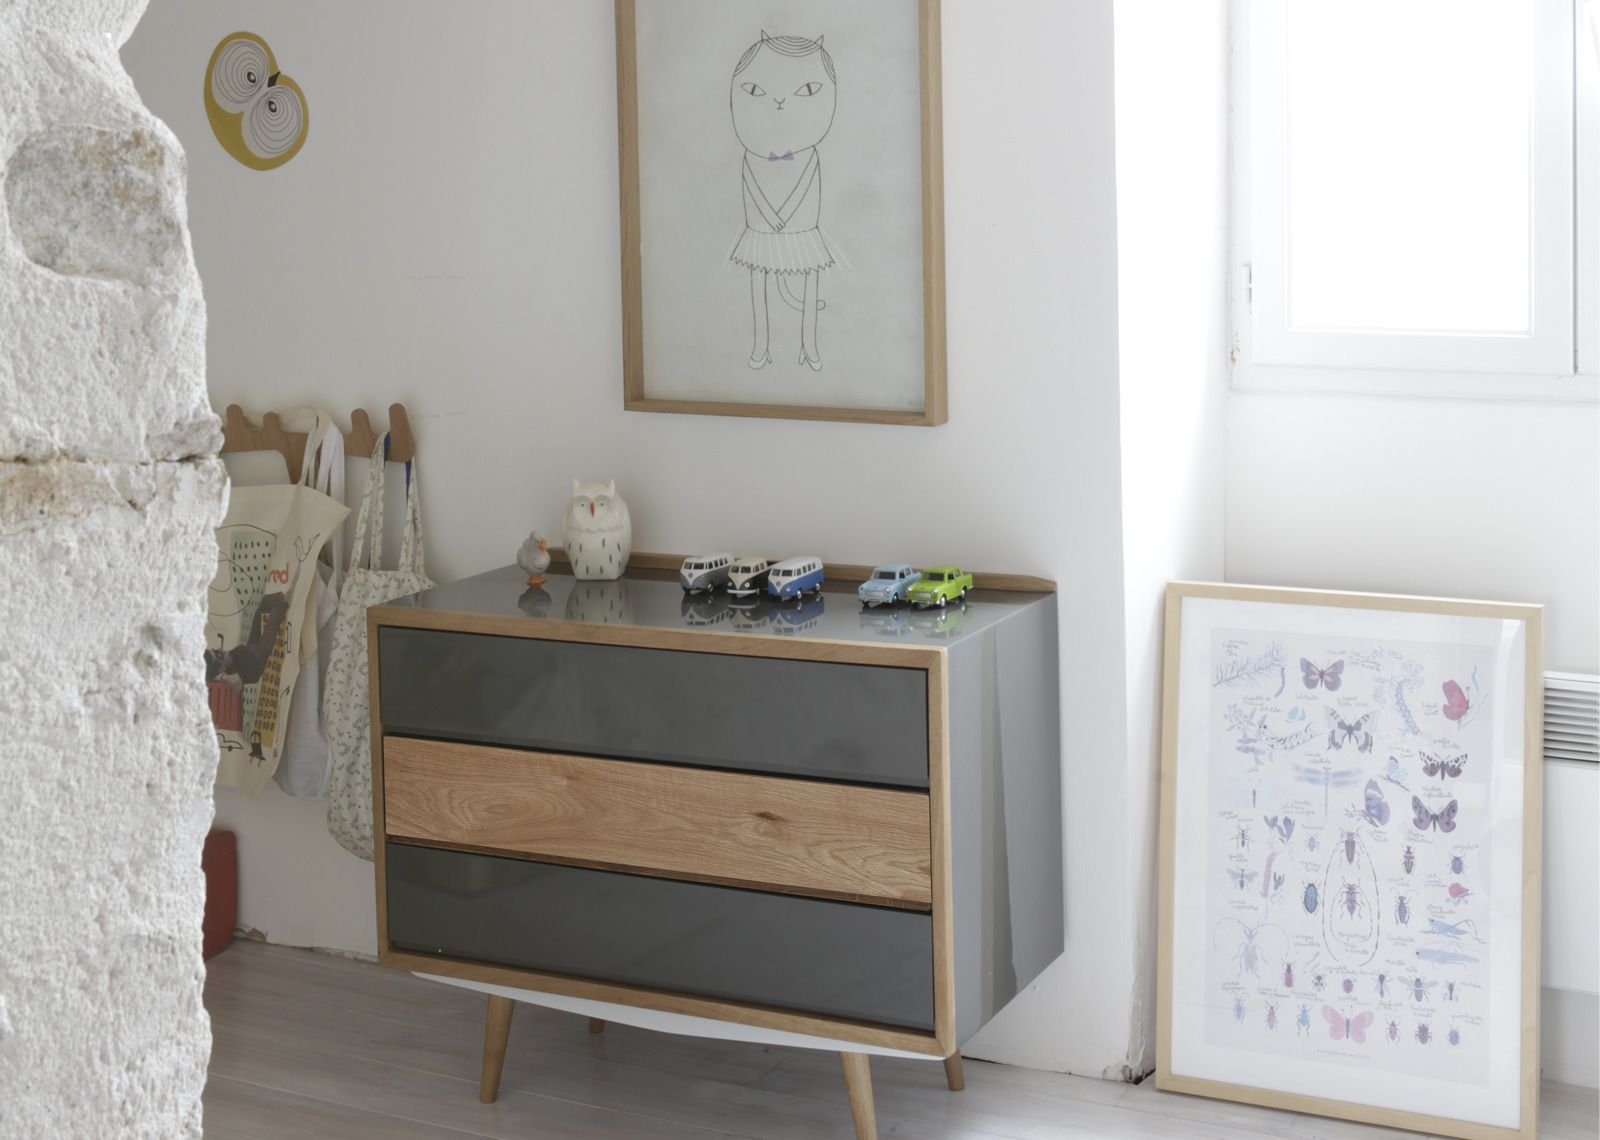 Commode inspiration pinterest decoration and interiors - Commode style scandinave ...